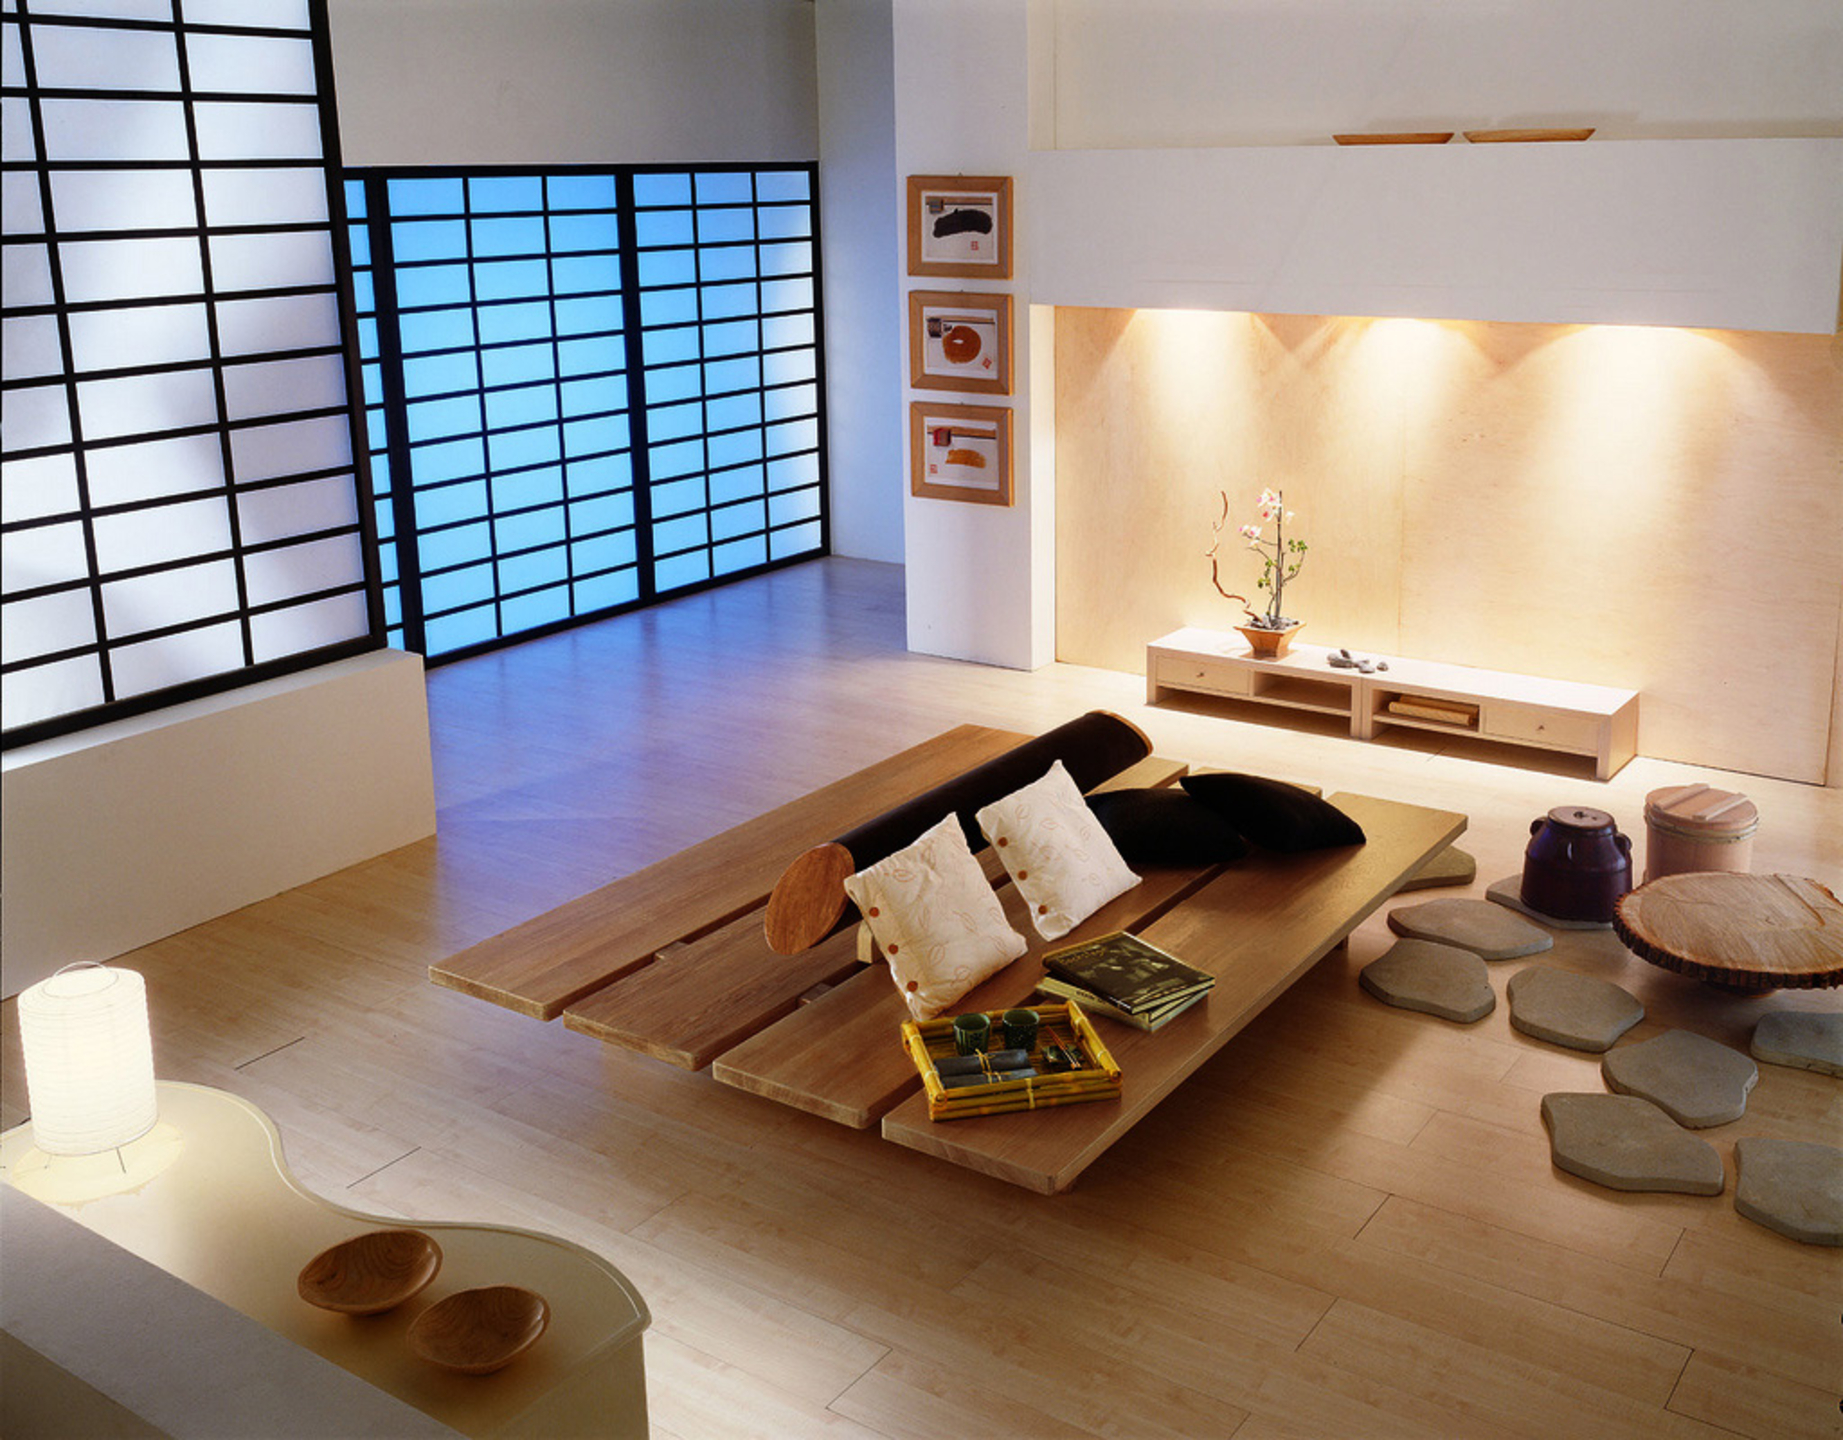 1920x1440-simple-elegant-asian-interior-design